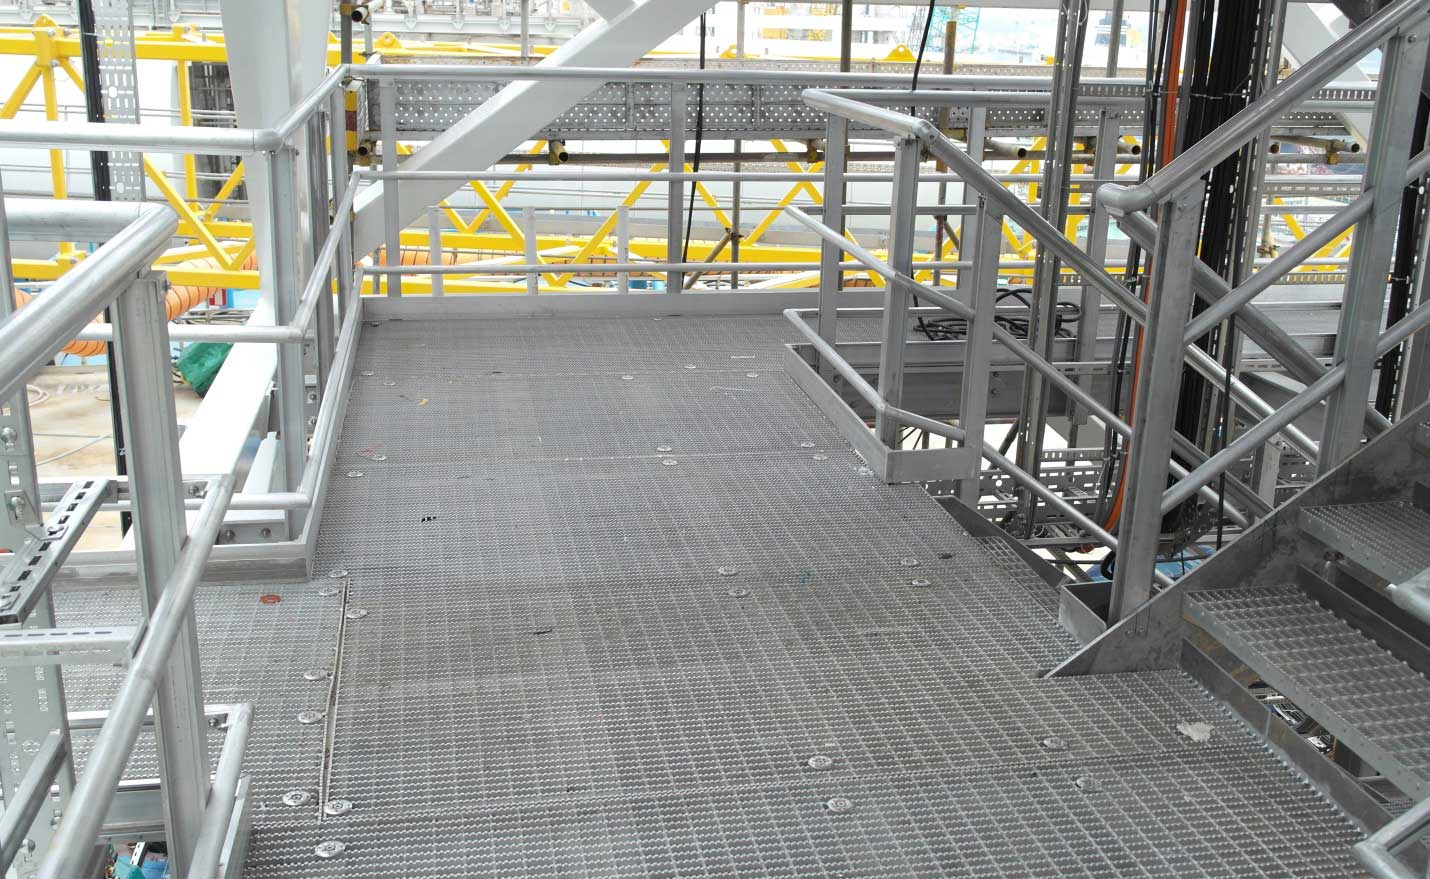 Quicklock Modular Handrails And Decking System On The Ekofisk Project